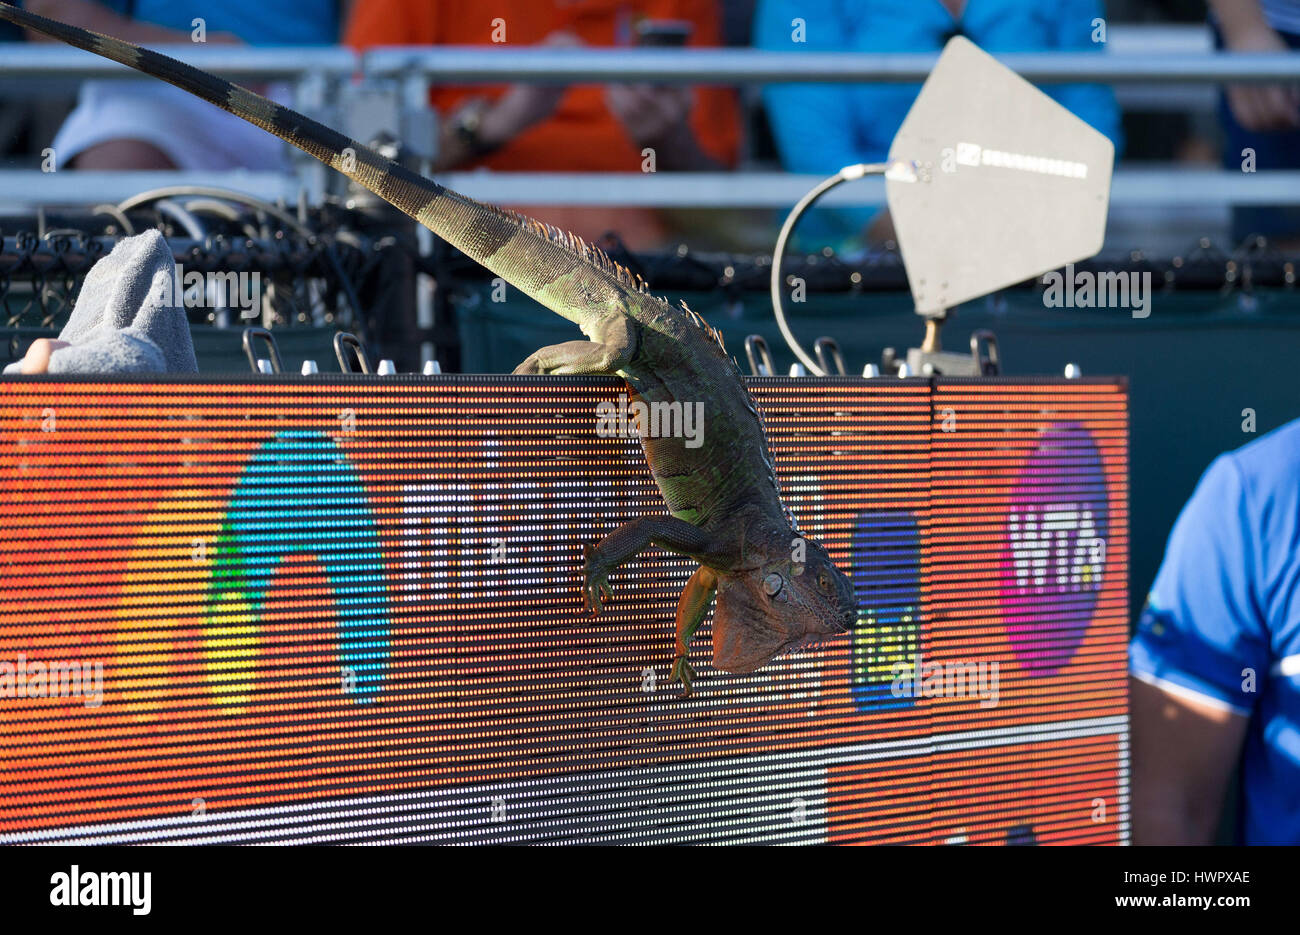 Key Biscayne, Florida, USA. 22nd Mar, 2017. An Iguana jumps off the scoreboard of Court 1, causing a brief play - Stock Image